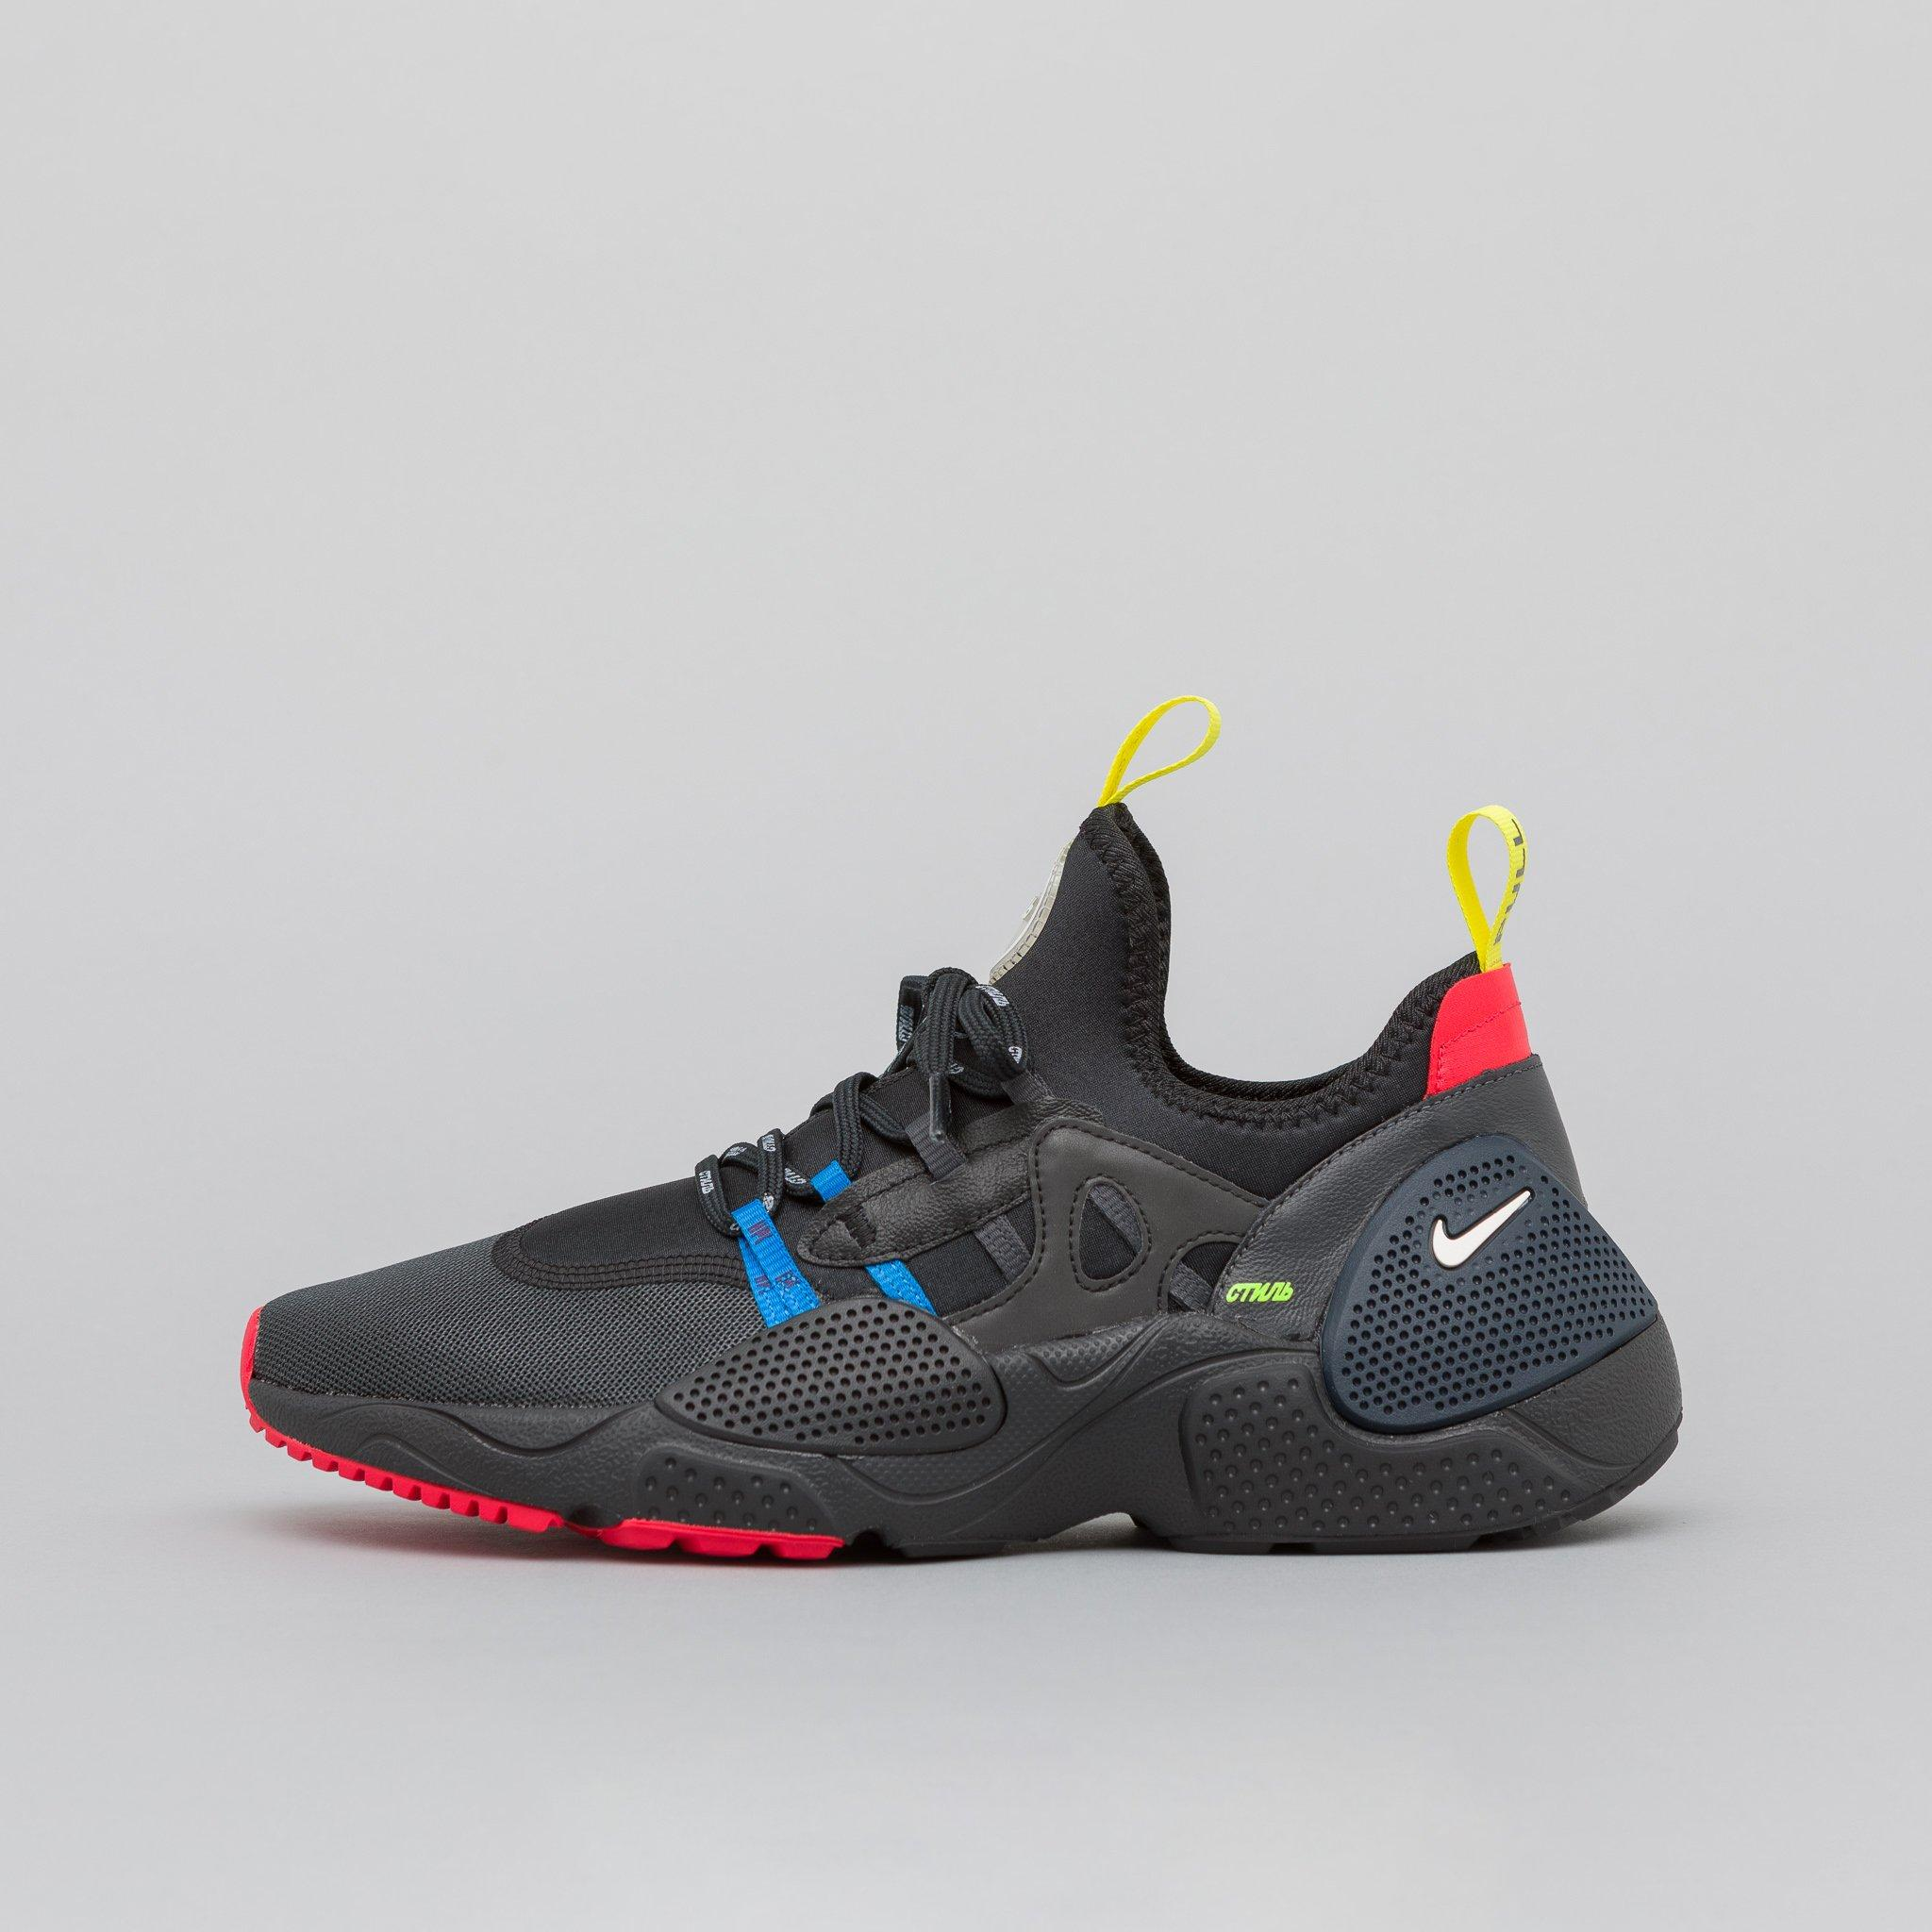 Heron Preston x Nike Huarache E.D.G.E. Black Red Blue New Sale